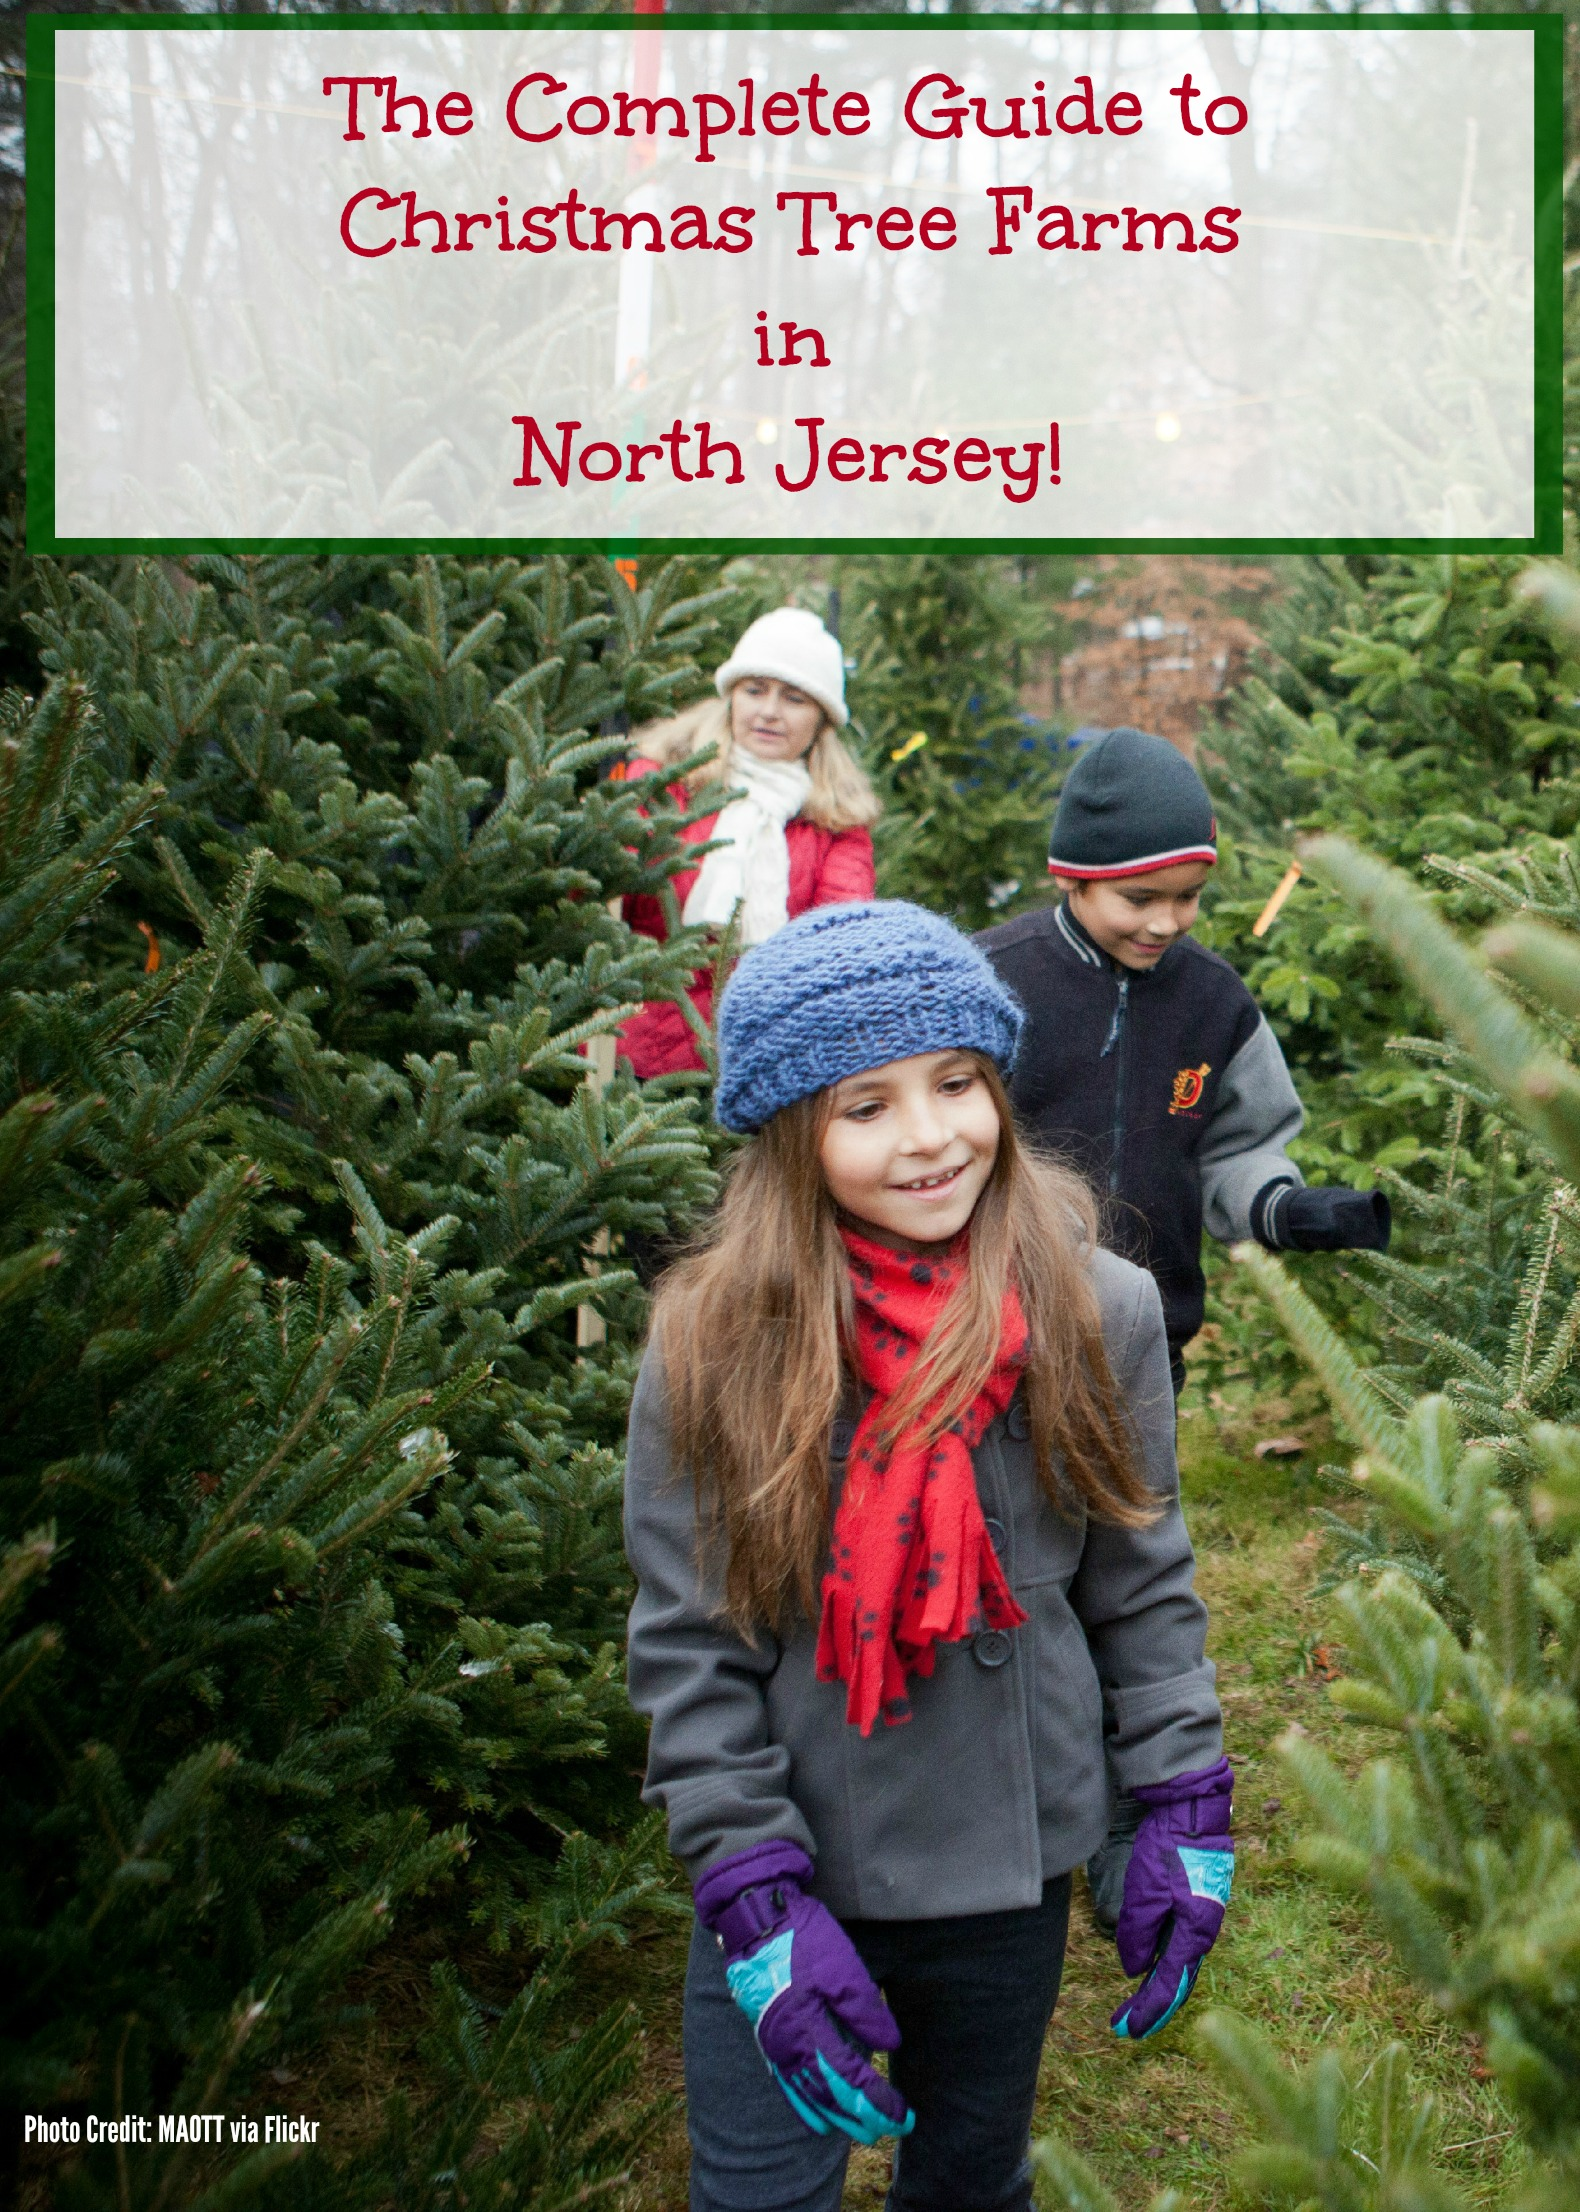 The Complete Guide To Christmas Tree Farms in North Jersey ...